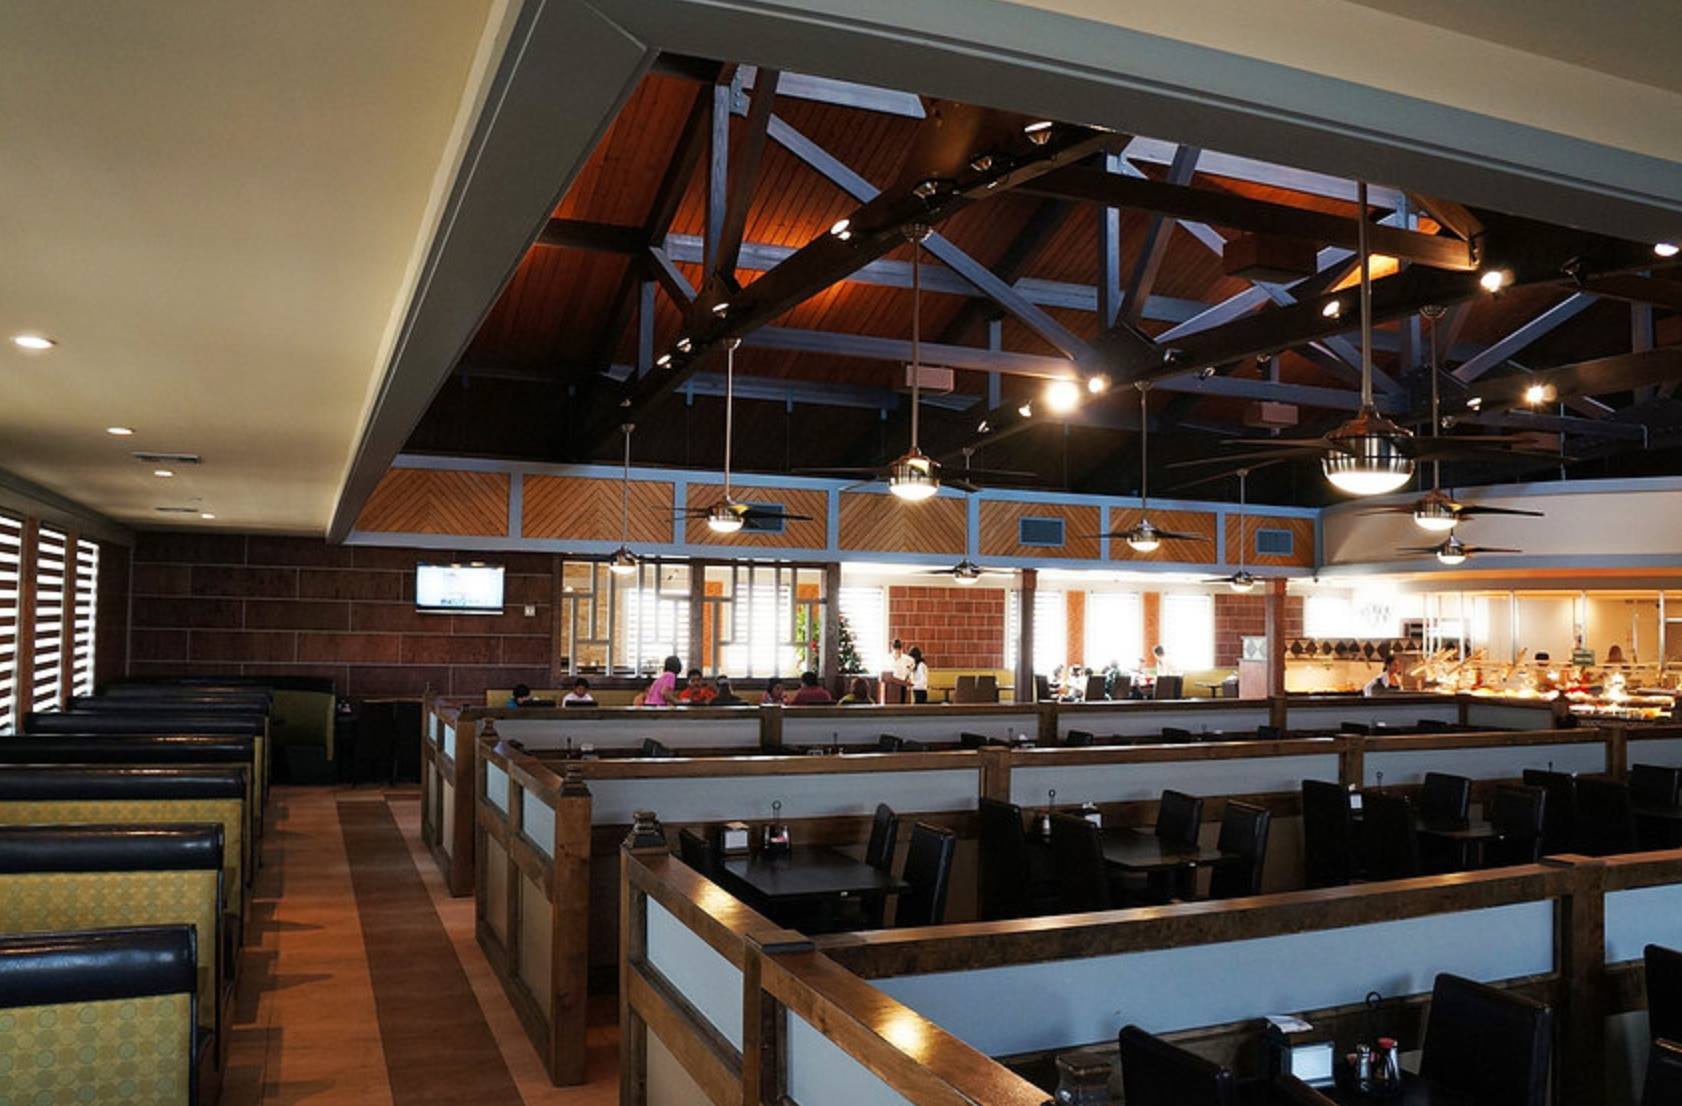 Interior of a building with wooden booths and wooden ceiling with lights that are hanging from wooden beams